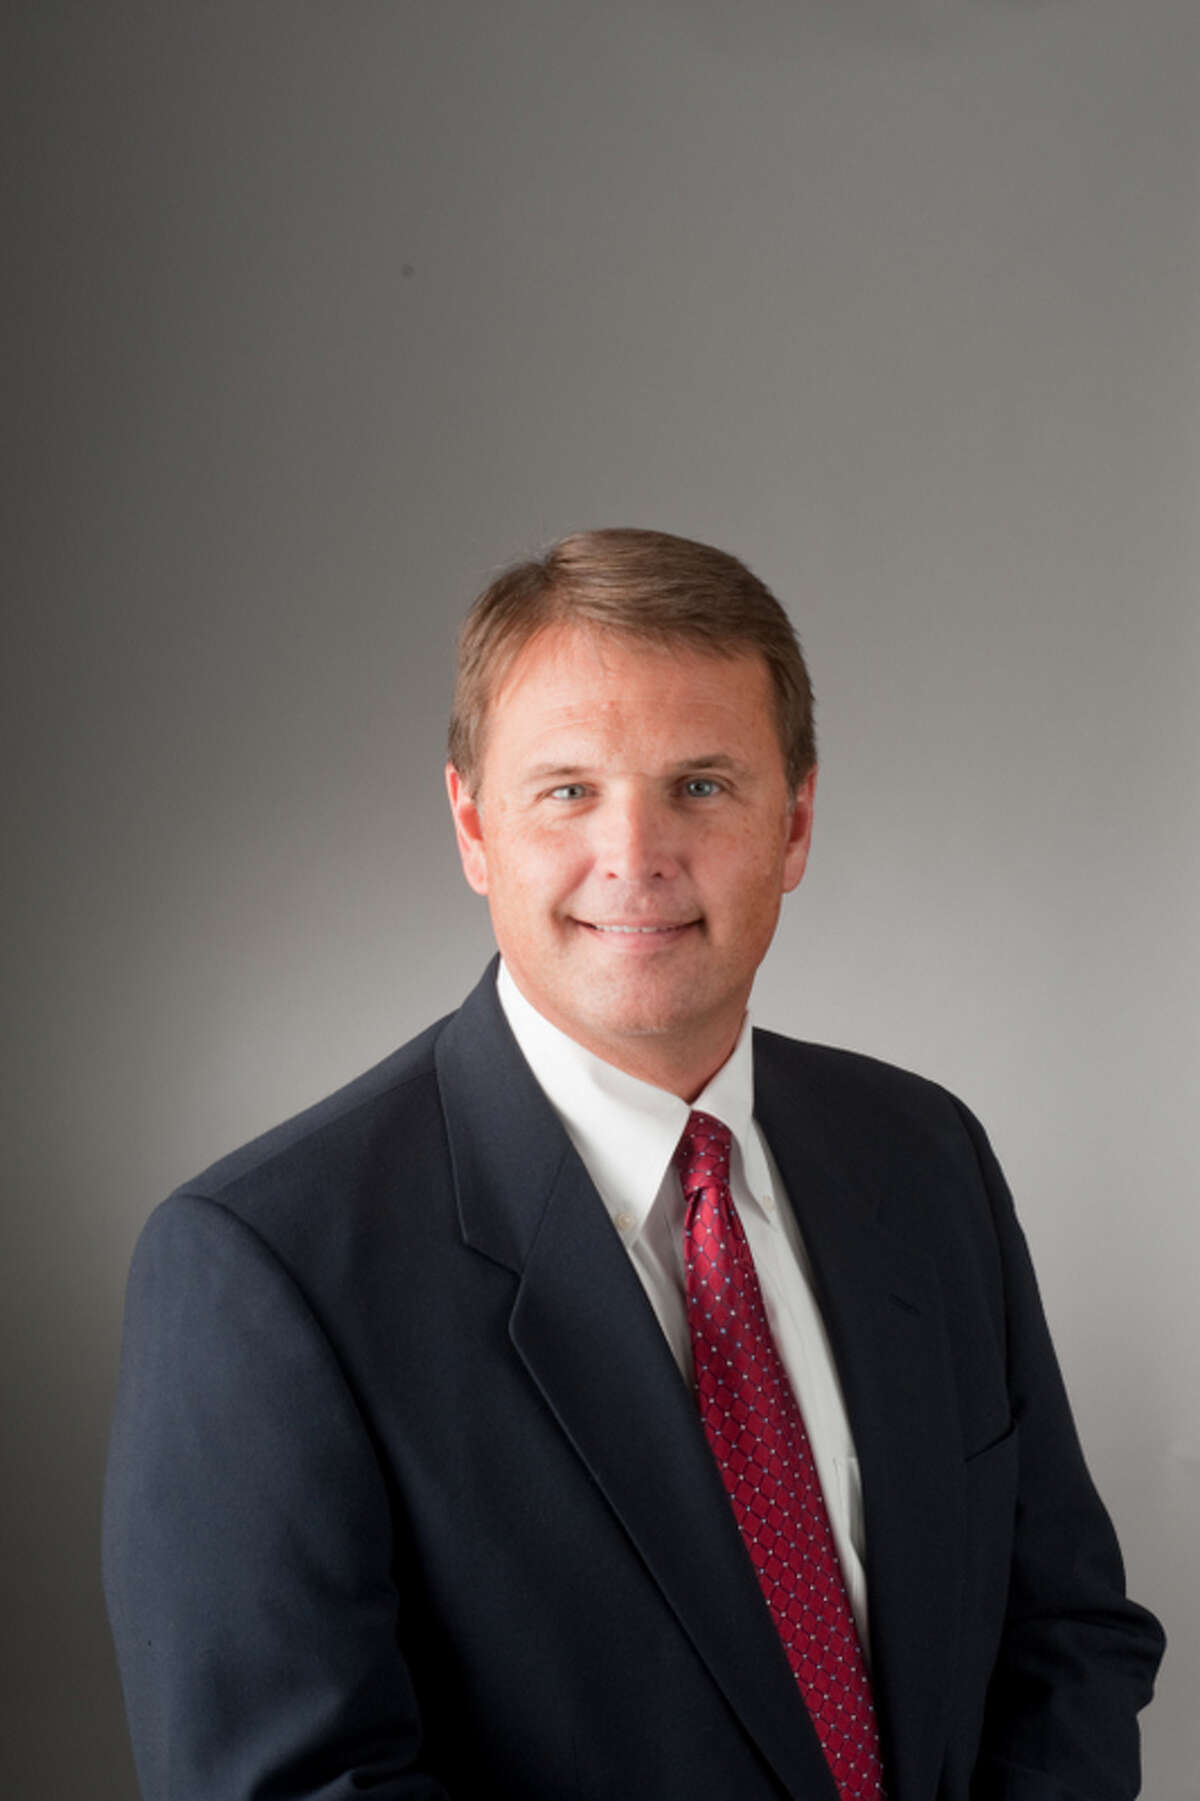 Apache Corp. announced that Keith Josey will join the company In the newly created position of director of real estate and administrative services. The position was created to address the company s growing need for specialized real estate expertise as Apache grows its existing regions and expands into new geographical areas.